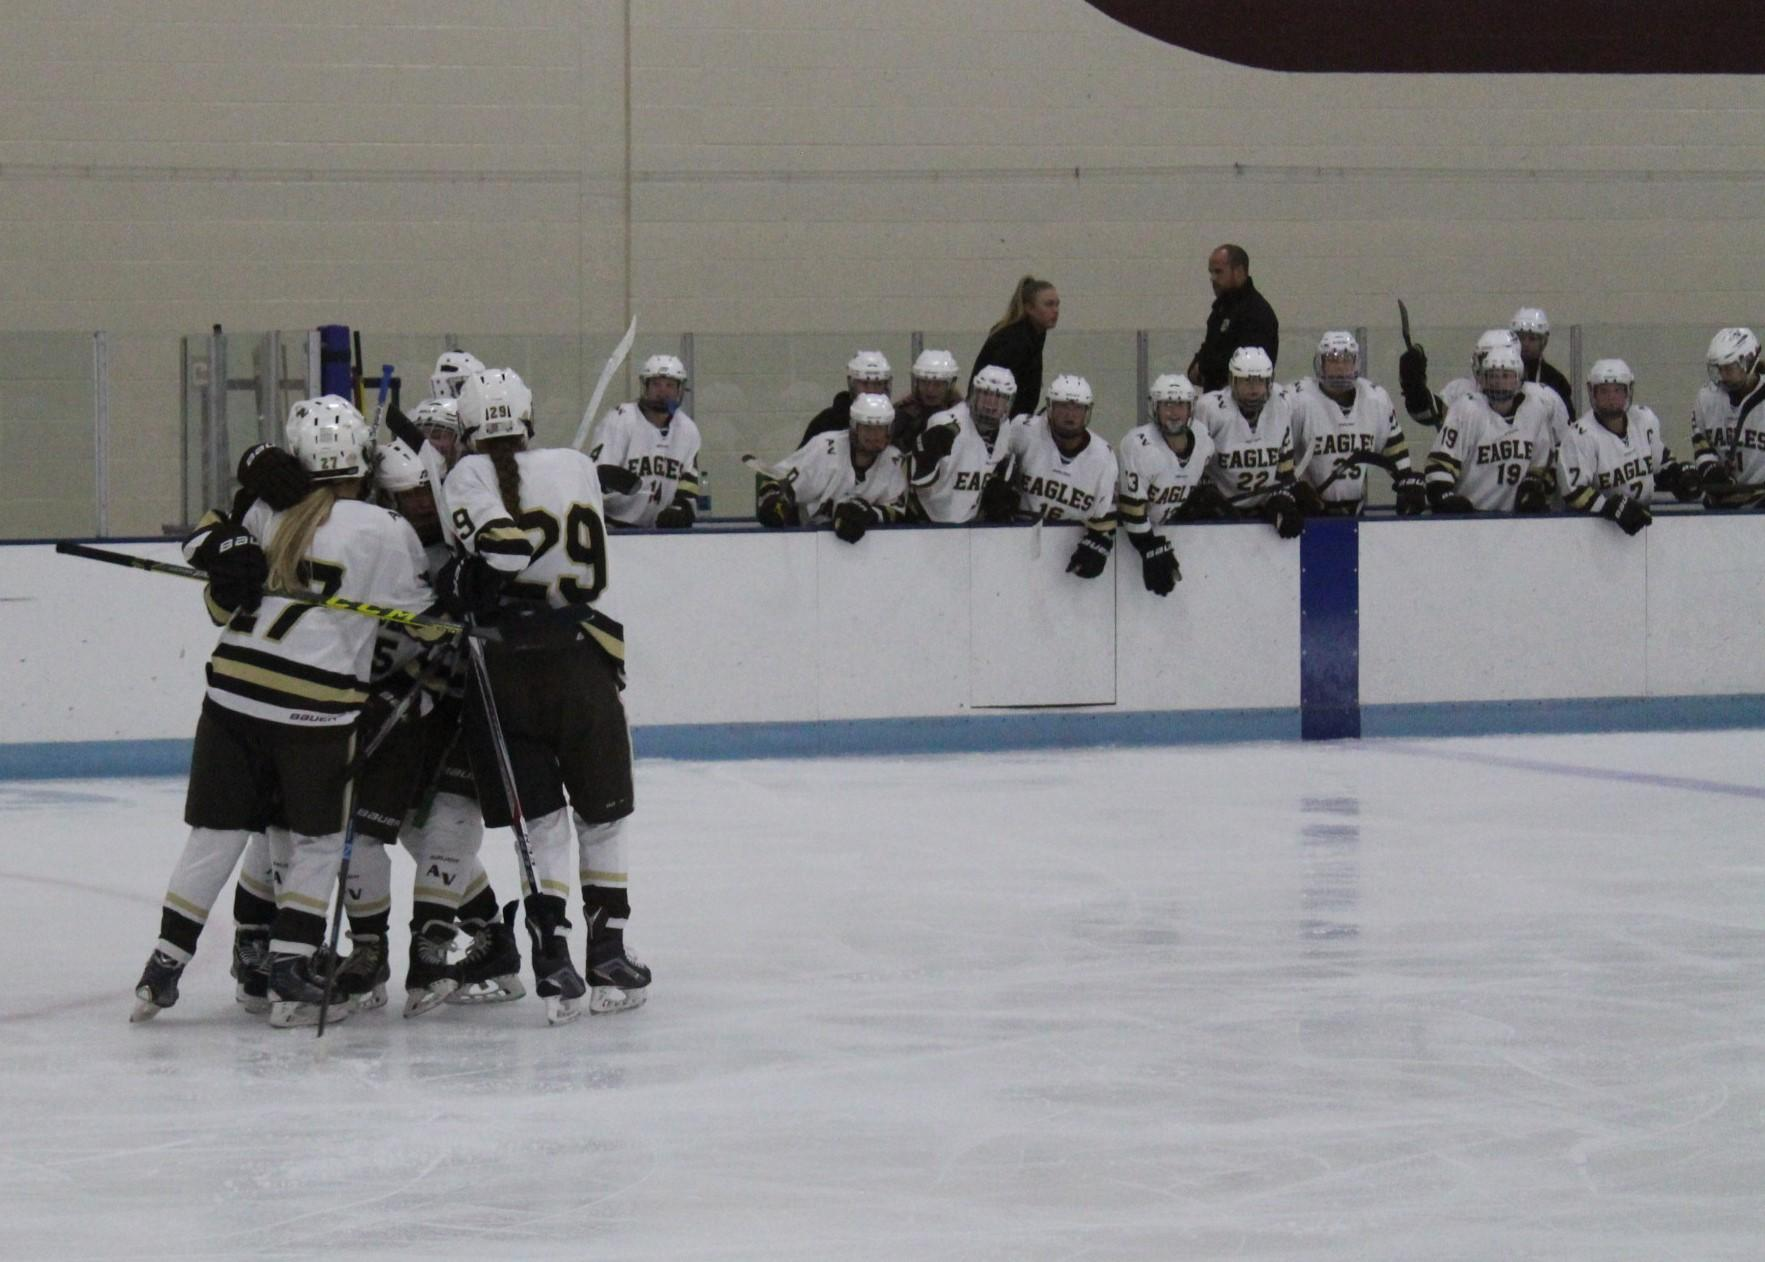 Team celebrating after tying goal.